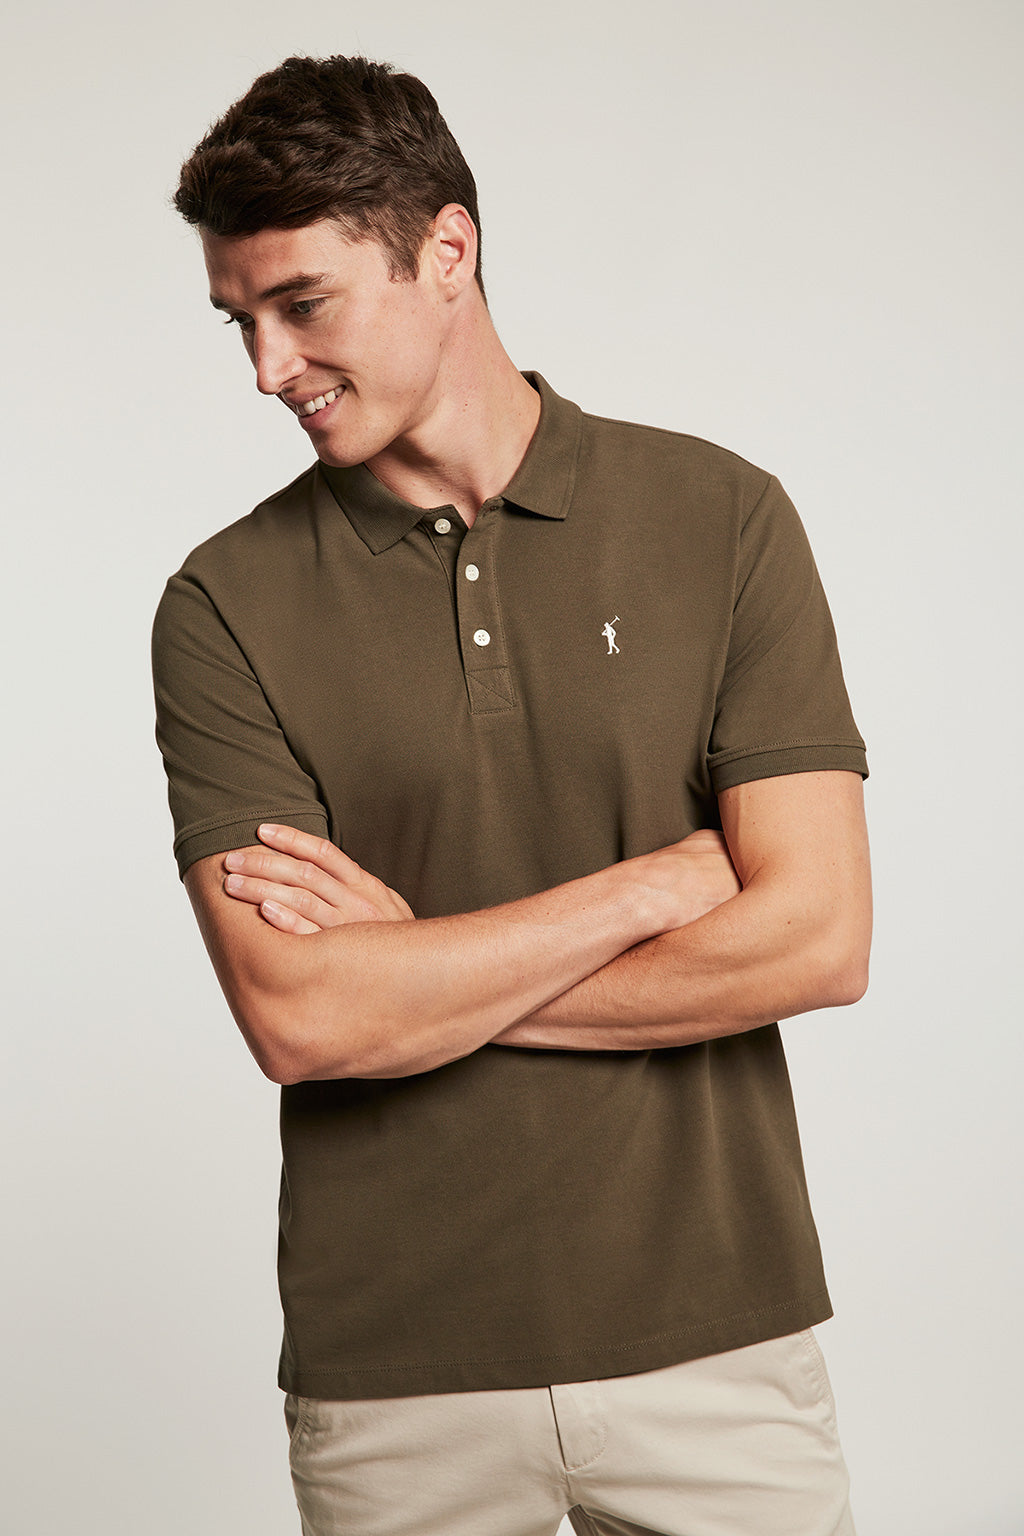 Khaki organic polo shirt with embroidered logo